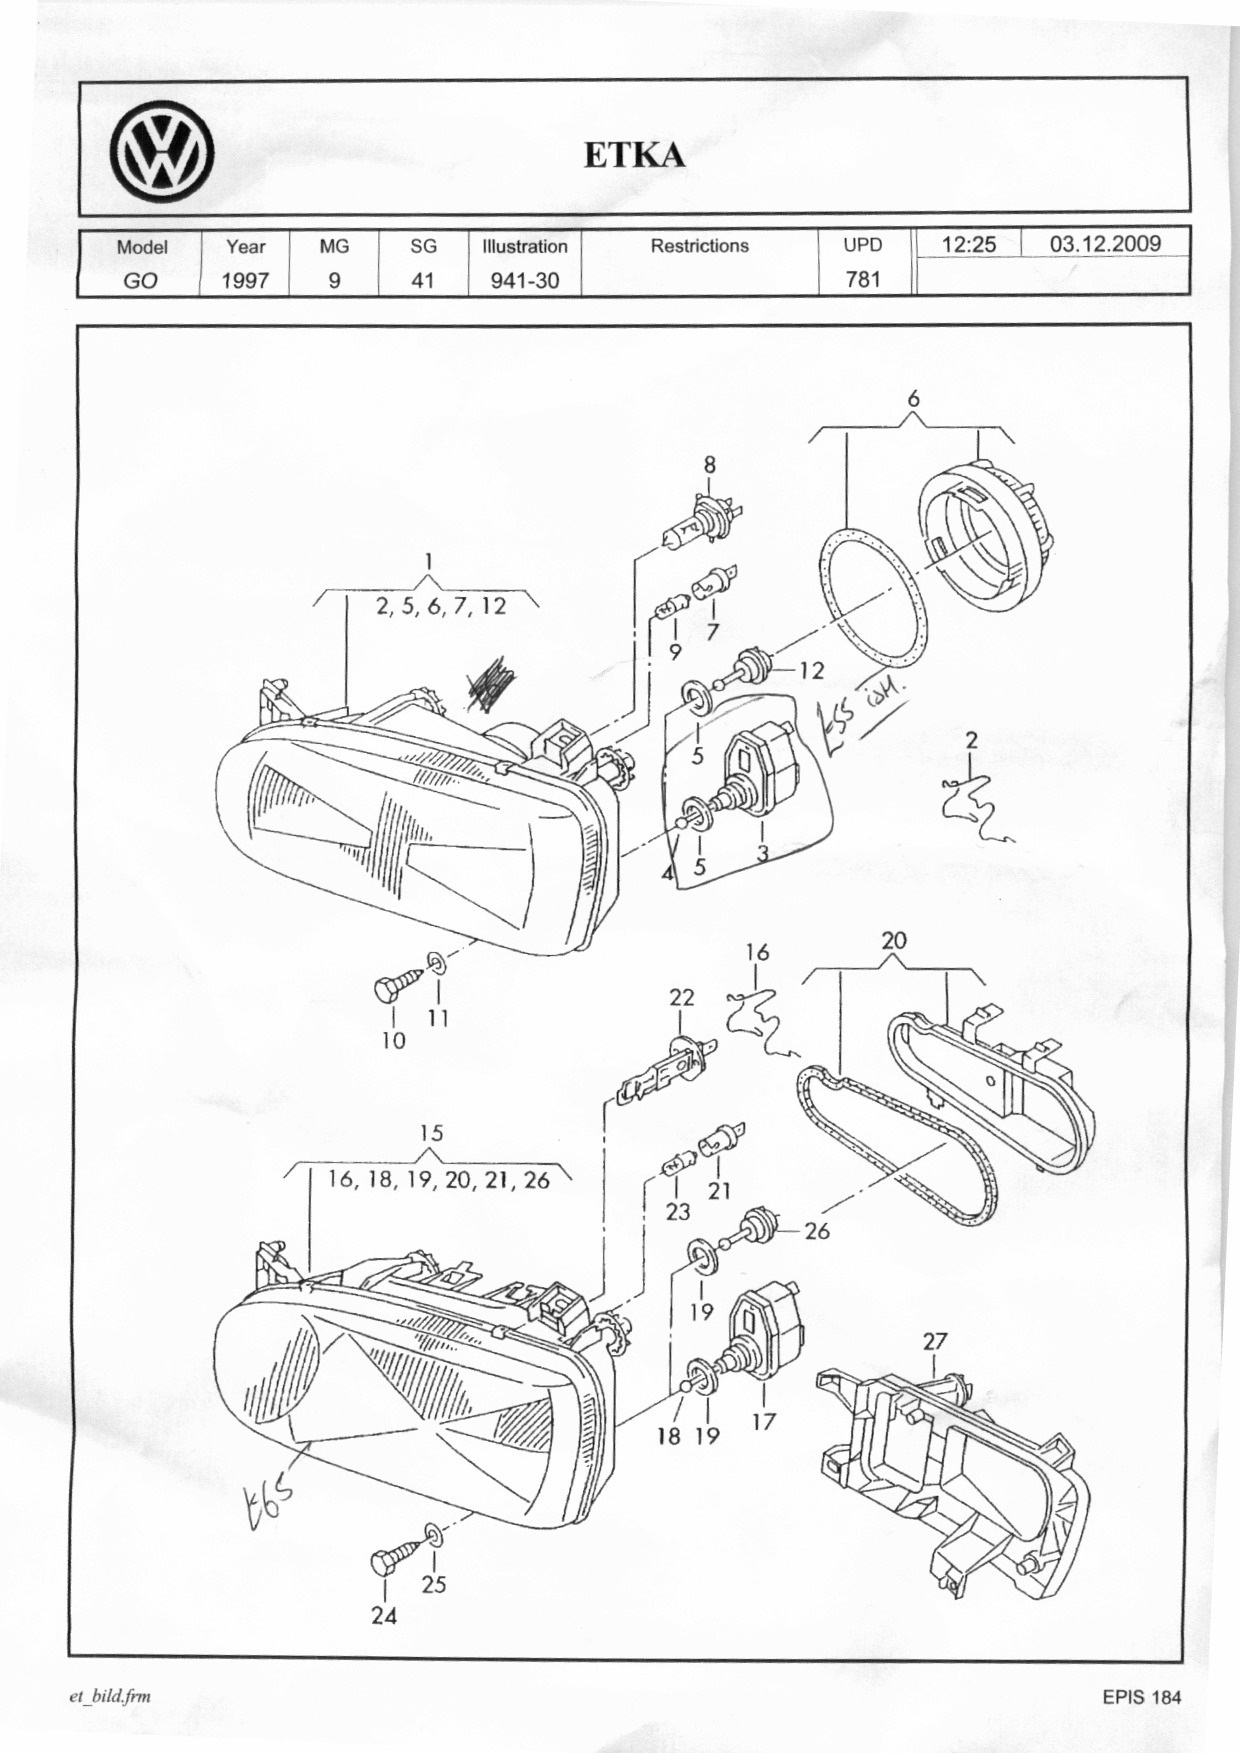 1996 Chevy S10 Wiring Diagram besides T3215998 Need layout vacum hoses 350 in addition o Probar Las Bobinas 1 together with Watch together with Saab 2 0 Ecotec Engine Diagram. on 2003 chevy cavalier engine diagram spark plug